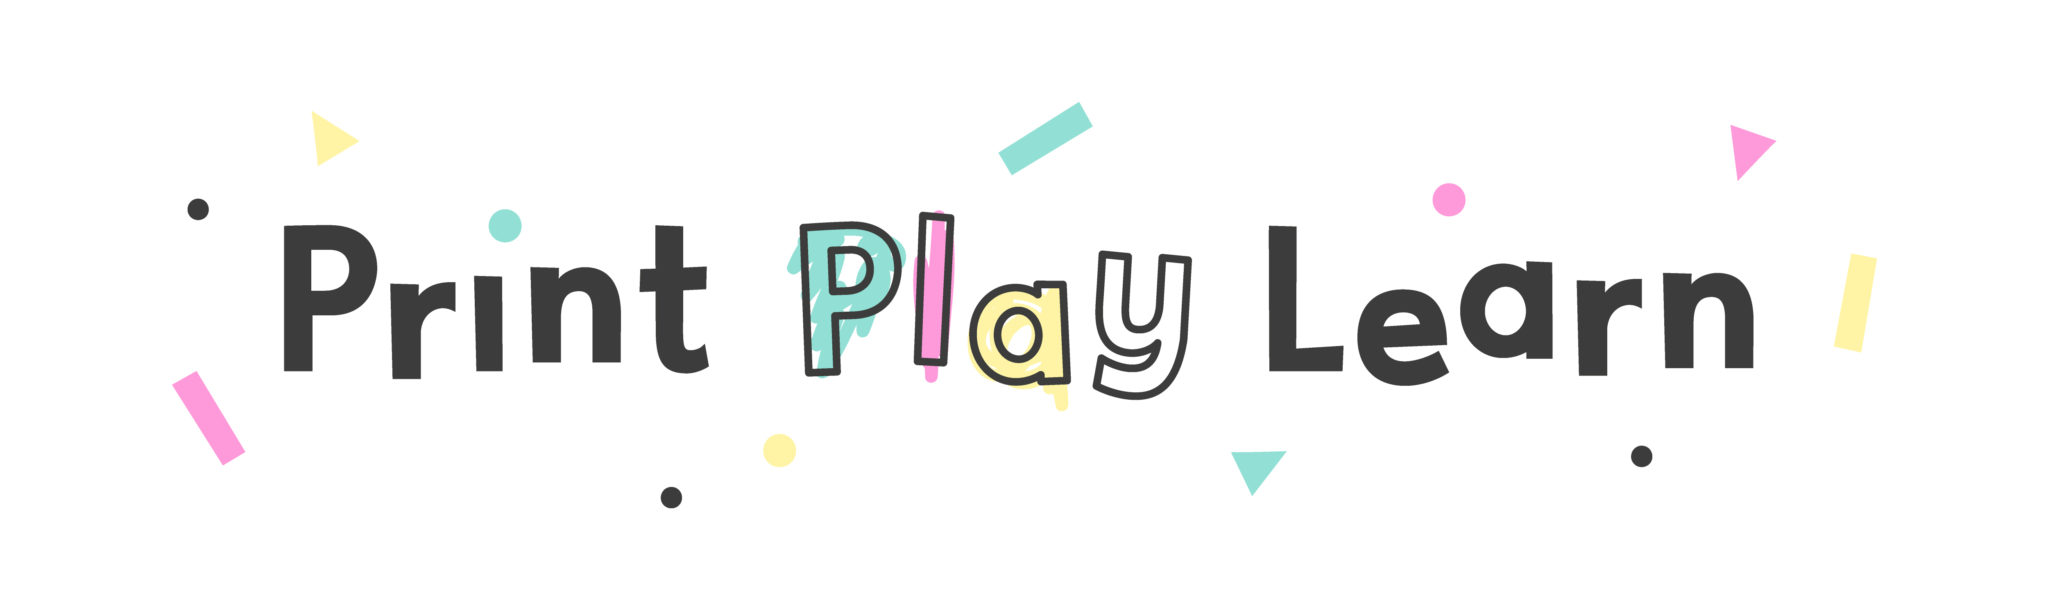 print play learn free teaching resources